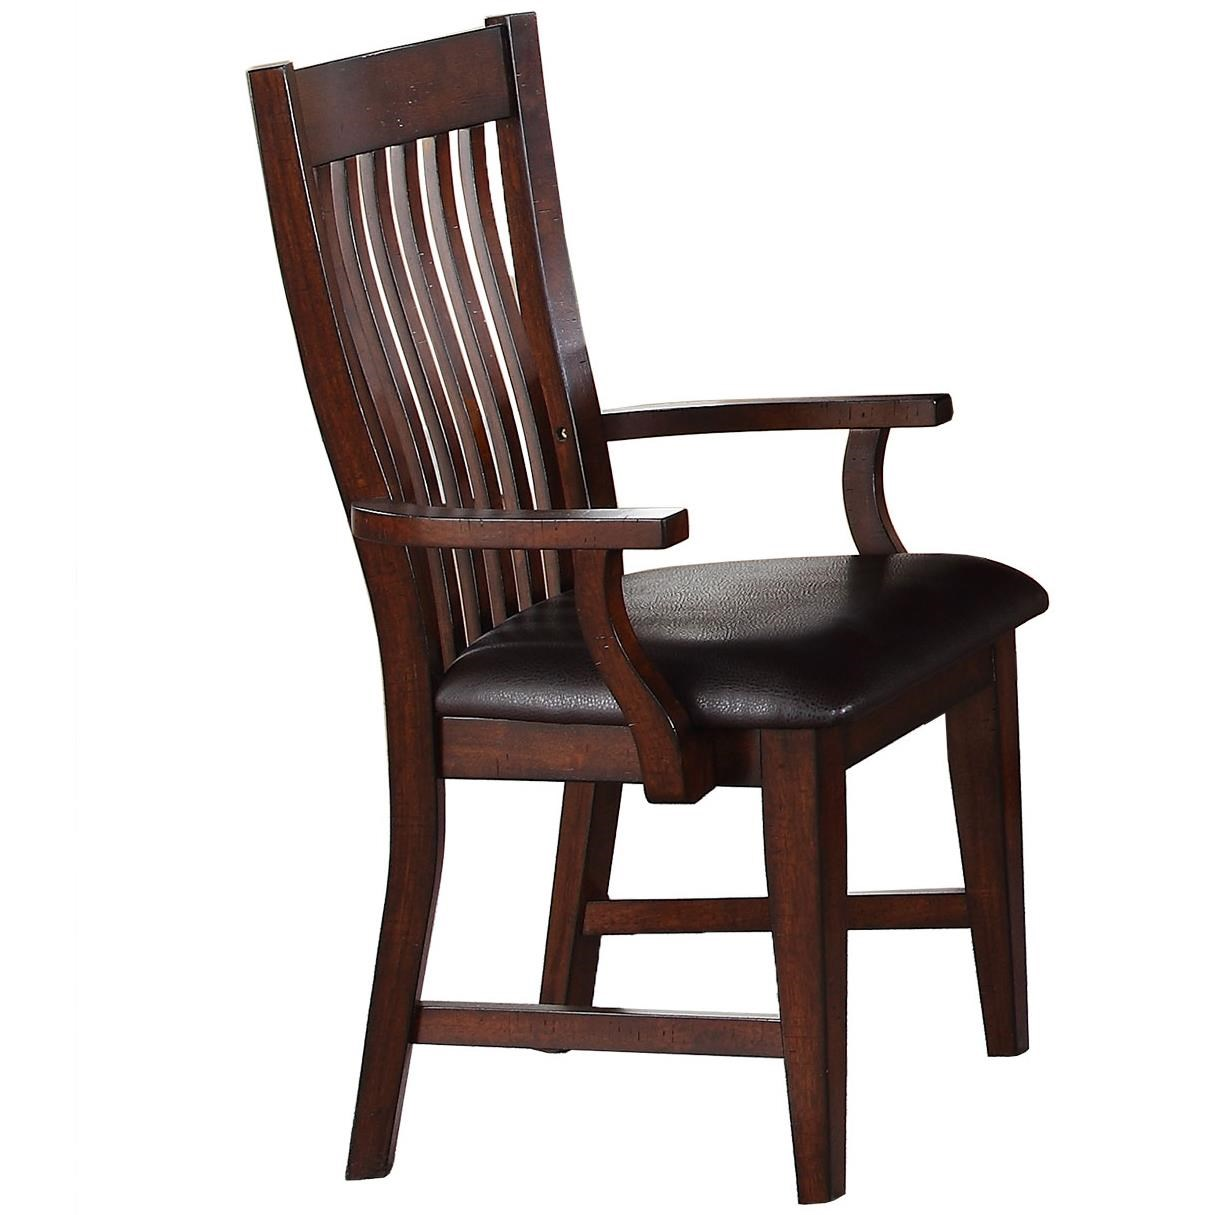 Retreat Slat Back Arm Chair with Upholstered Seat